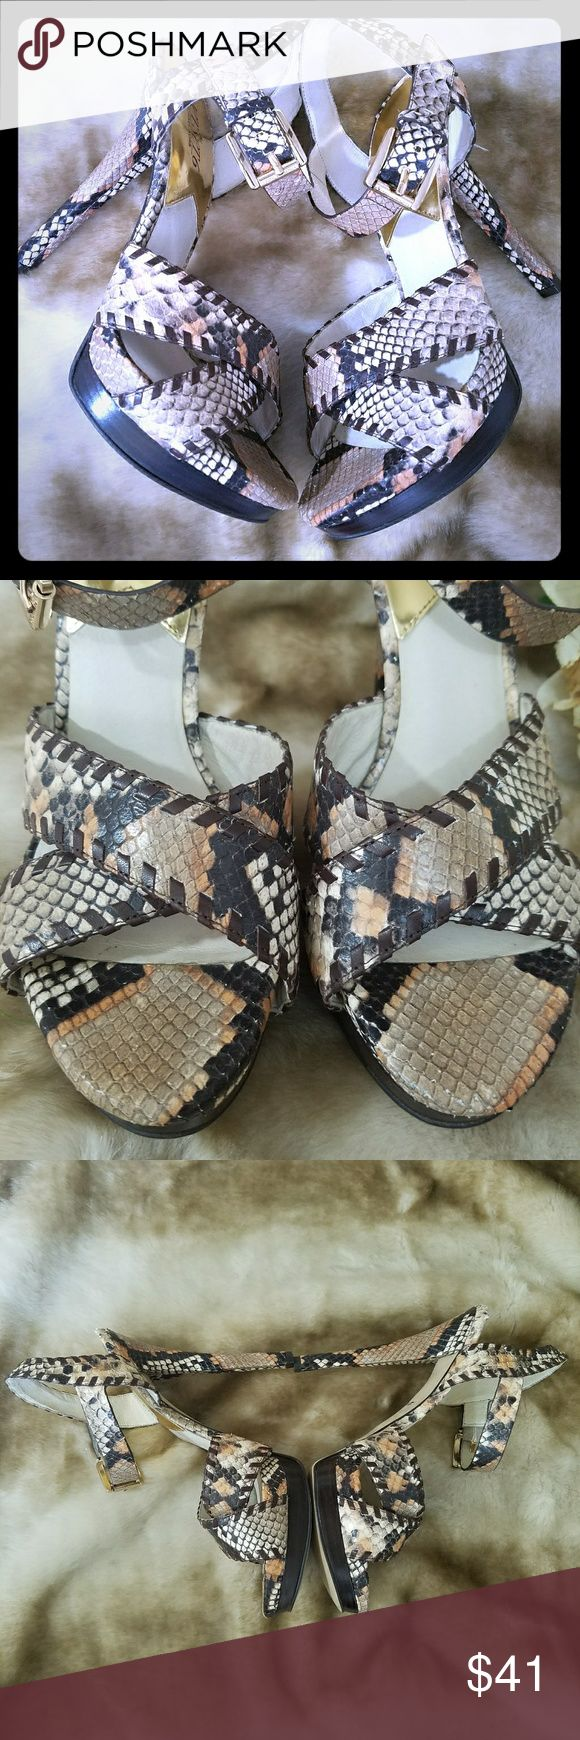 Michael Kors Animal Print Heel Sandals The Jet Set 6 Odessa 10M Leather upper 👉Pre luved condition. The back top of heels are a little frayed, see pics. 🔎 🙌🏽Gorgeouse sandals. Make them yours!💥 Michael Kors Shoes Heels